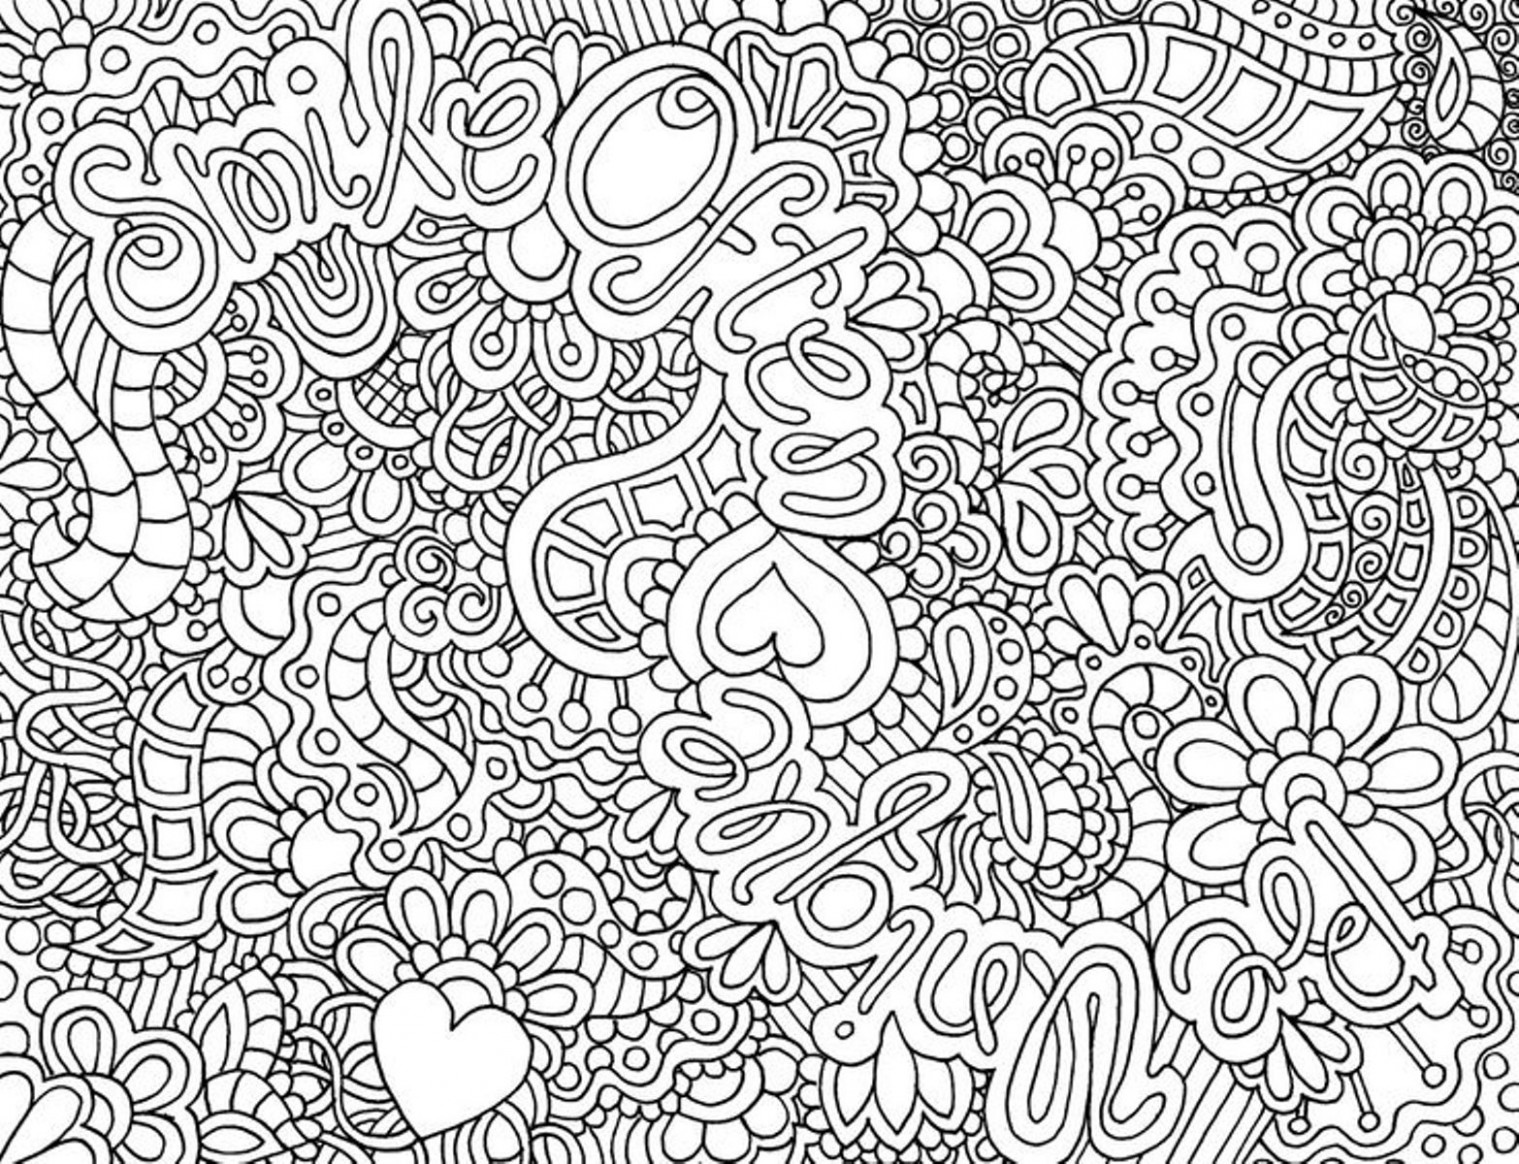 Coloring Ideas : Outstanding Adult Coloring Pages Hard Ideas For ..